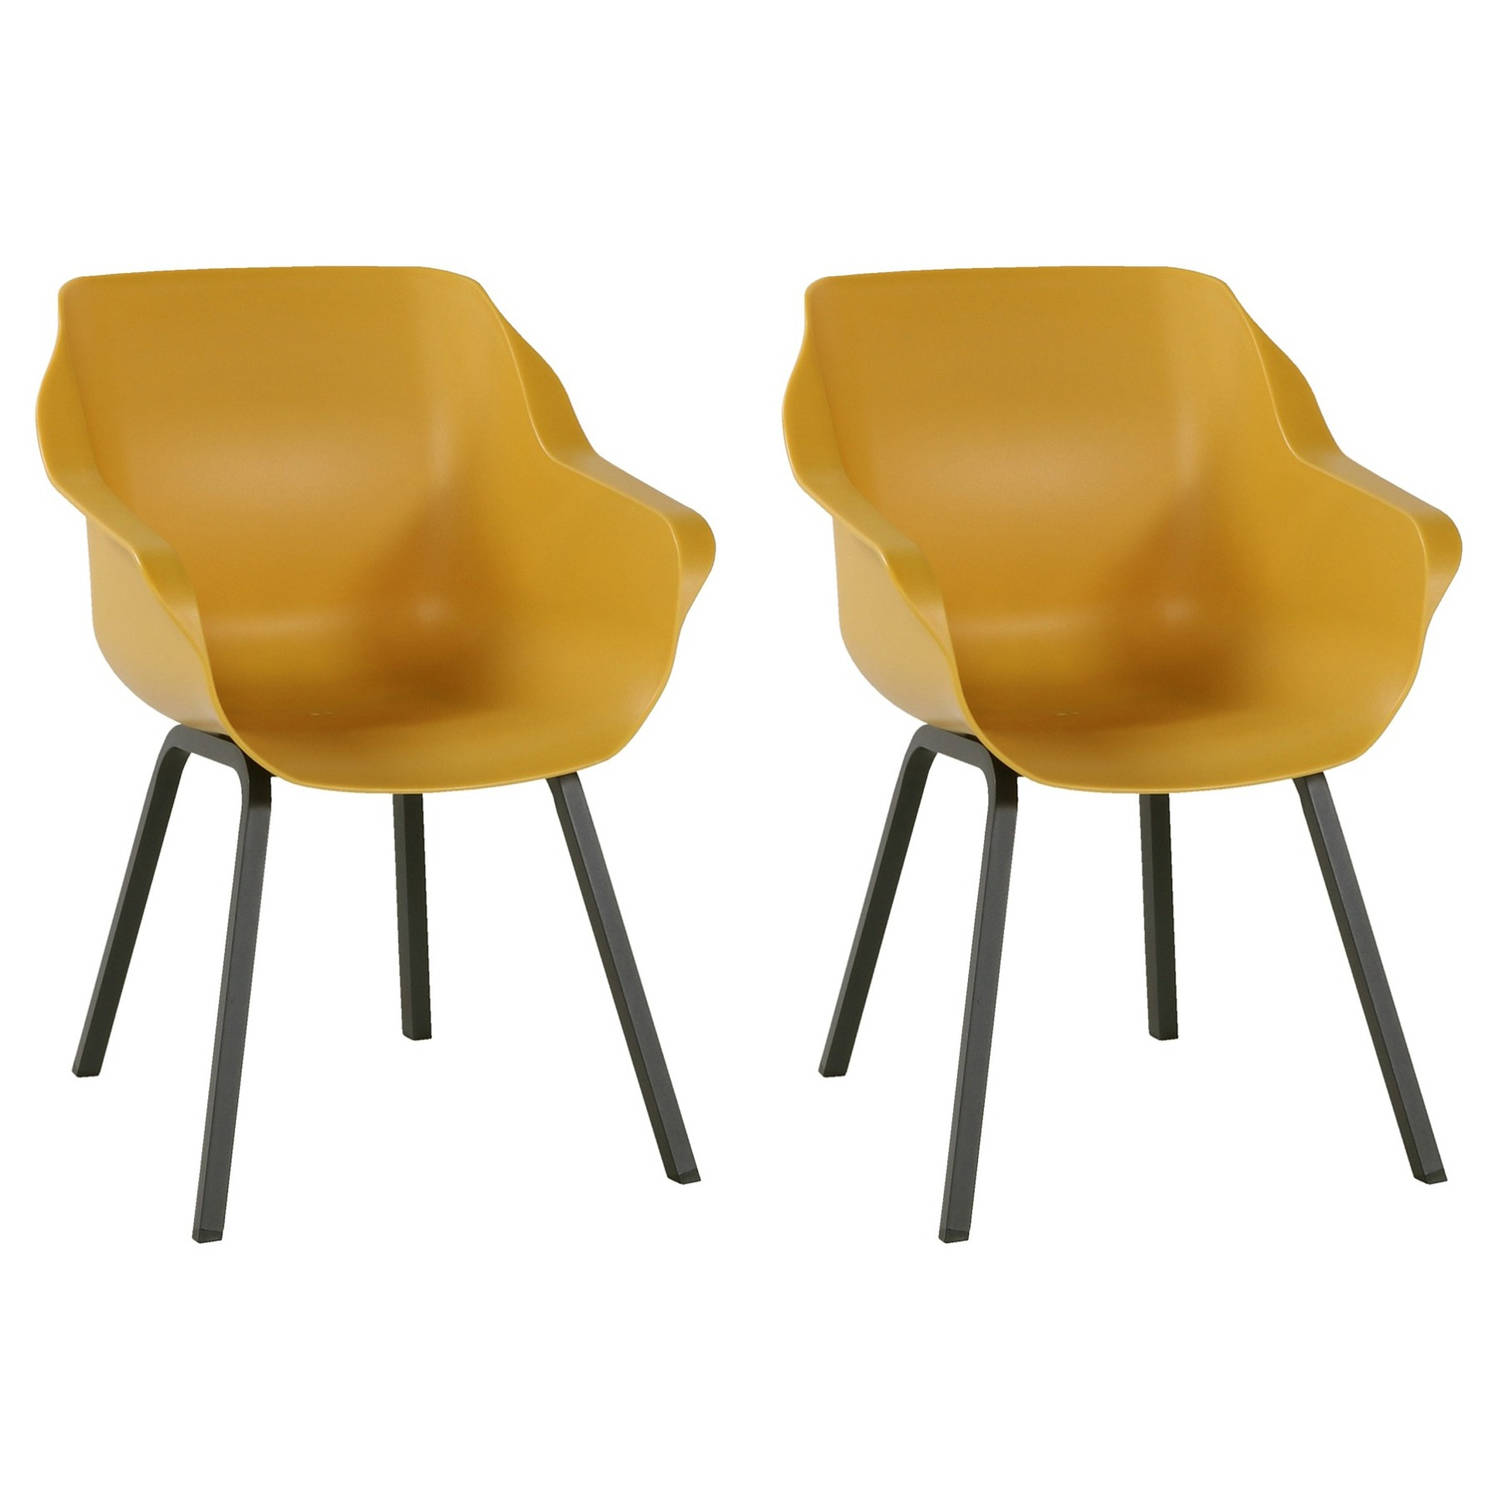 Hartman Sophie Element Dining Tuinstoel Armleuning - Set Van 2 - Curry Yellow NU Met Gratis Zitkusse